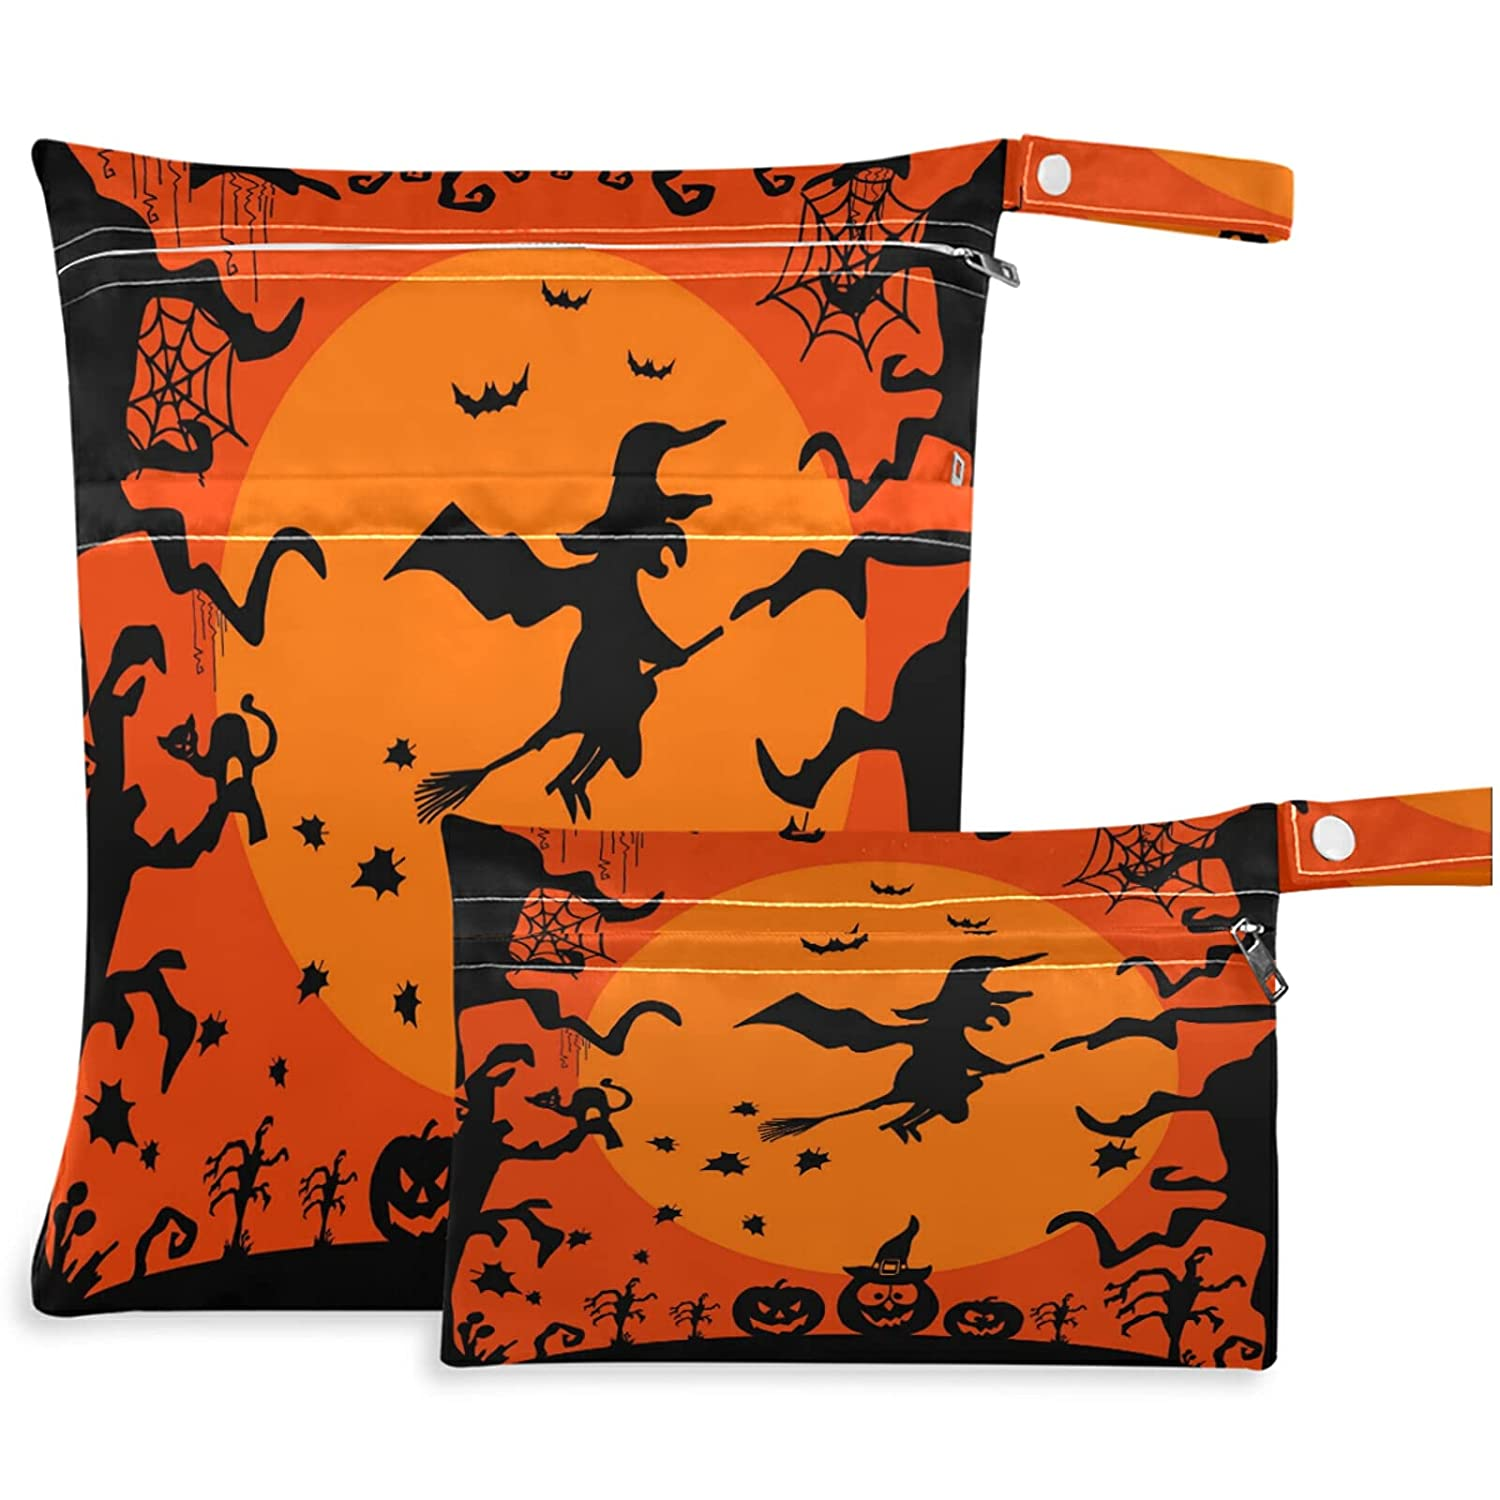 visesunny At the price Creative Style Selling and selling Happy Halloween Bat And Wet 2Pcs Witch